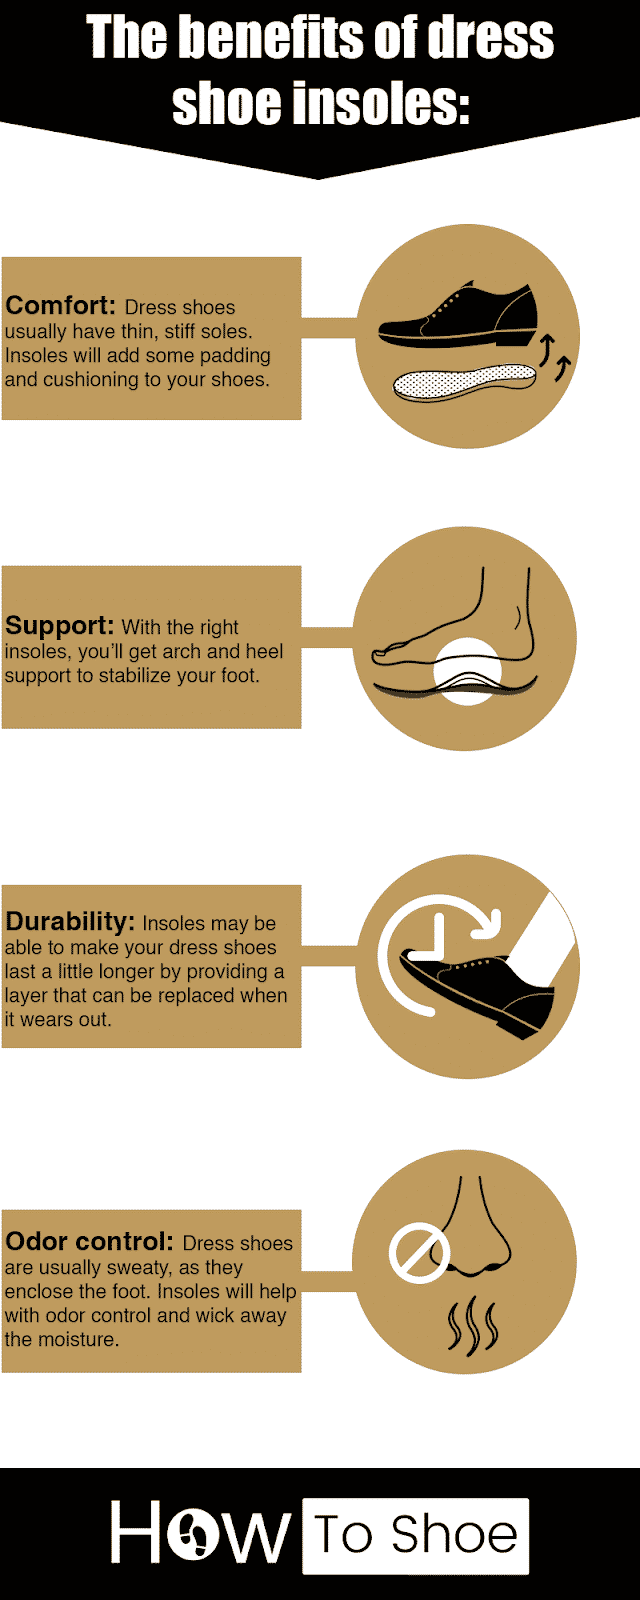 Best Insoles for Dress Shoes infographic